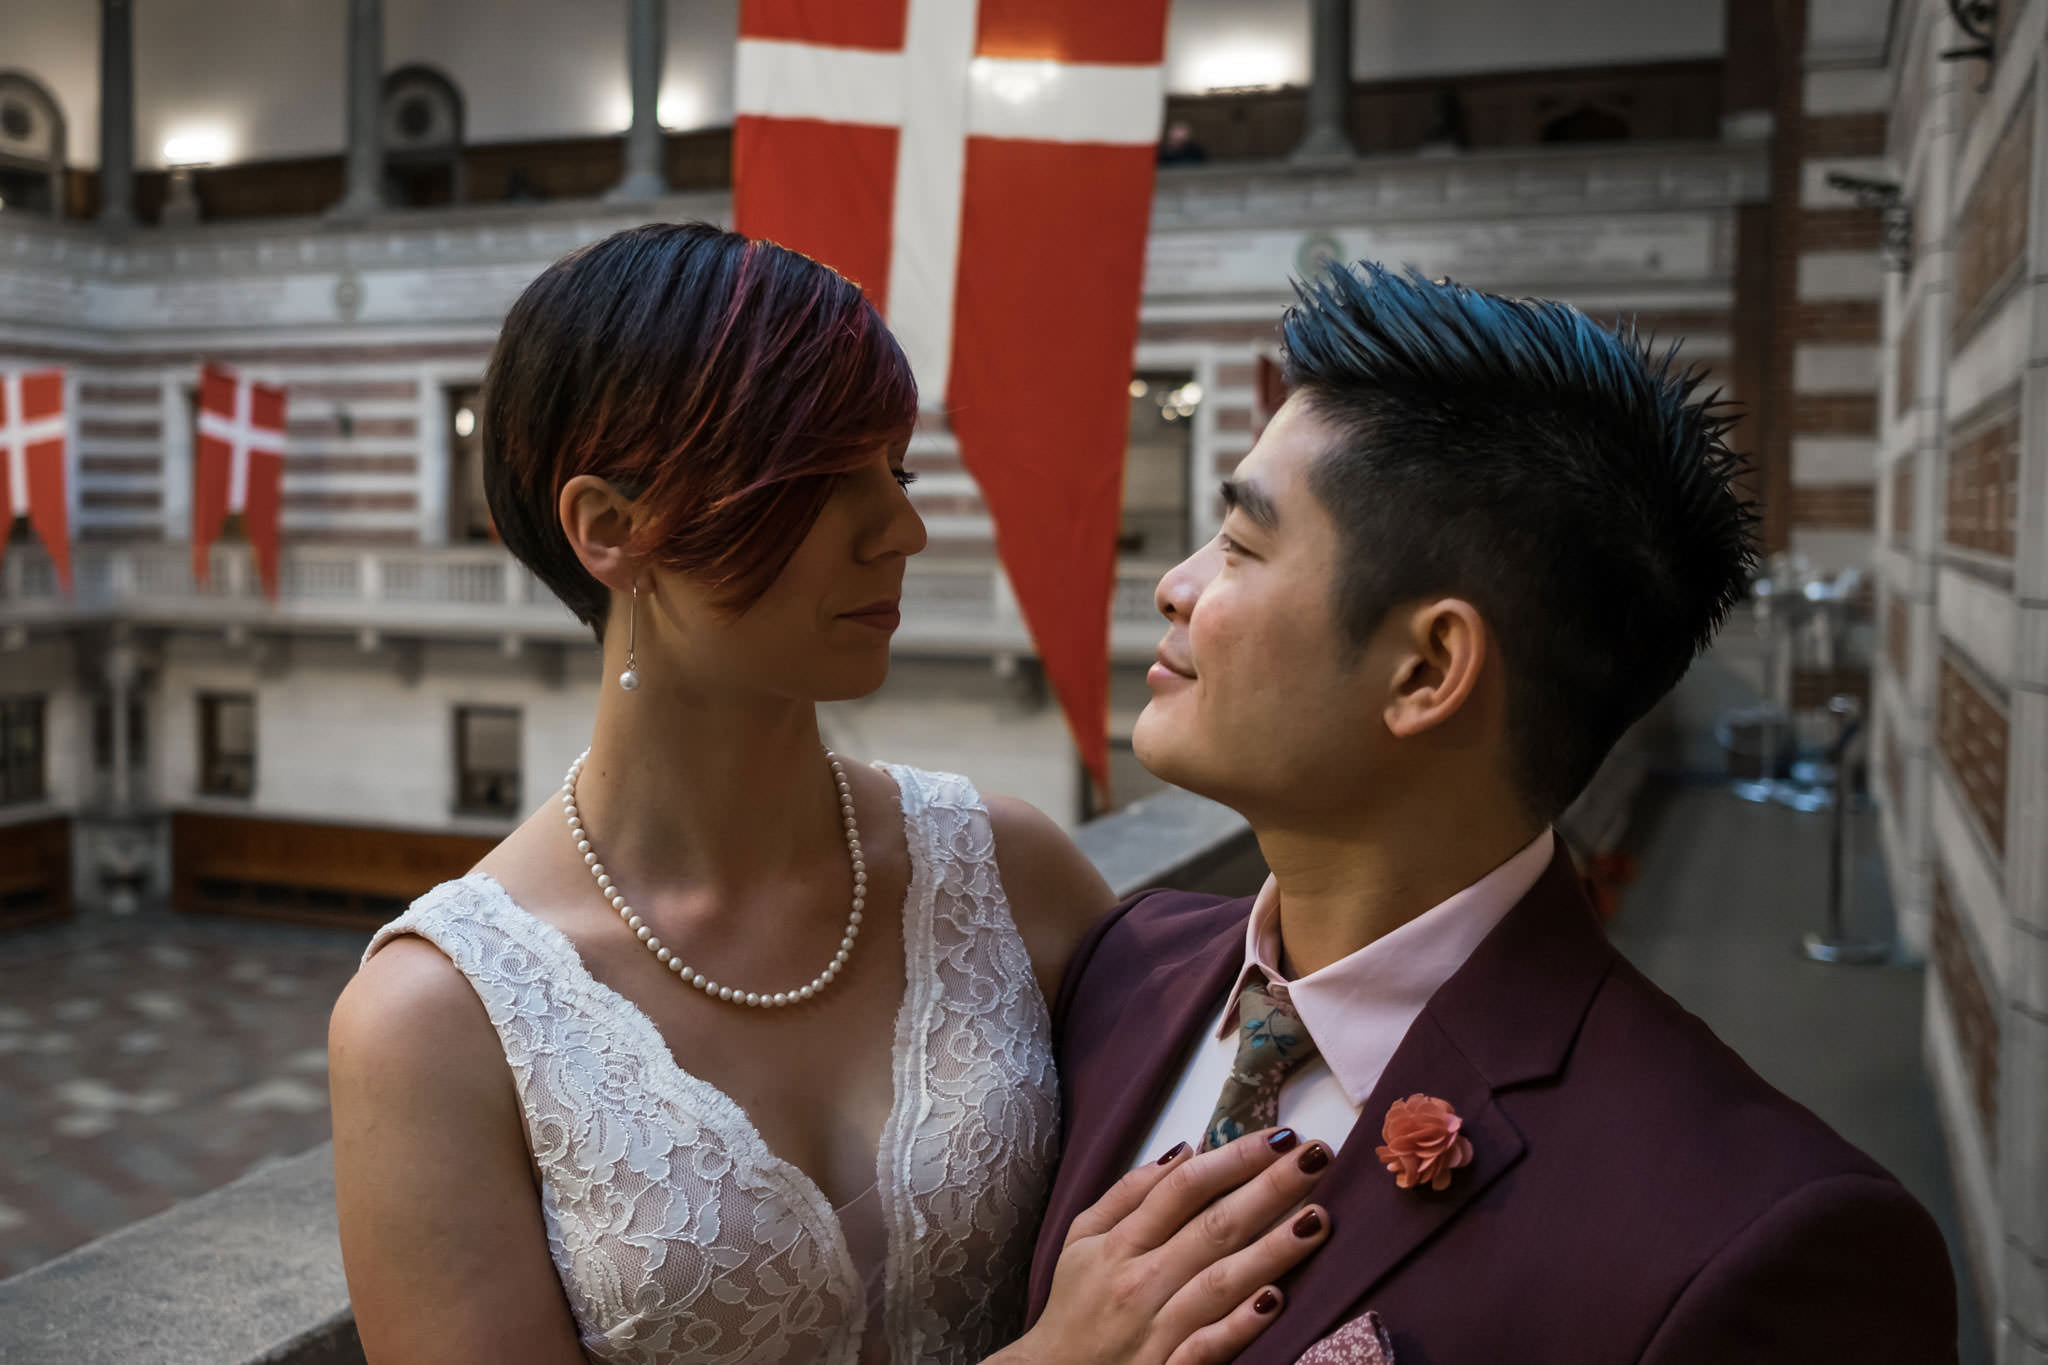 How To Germany - Getting Married in Denmark Storefront